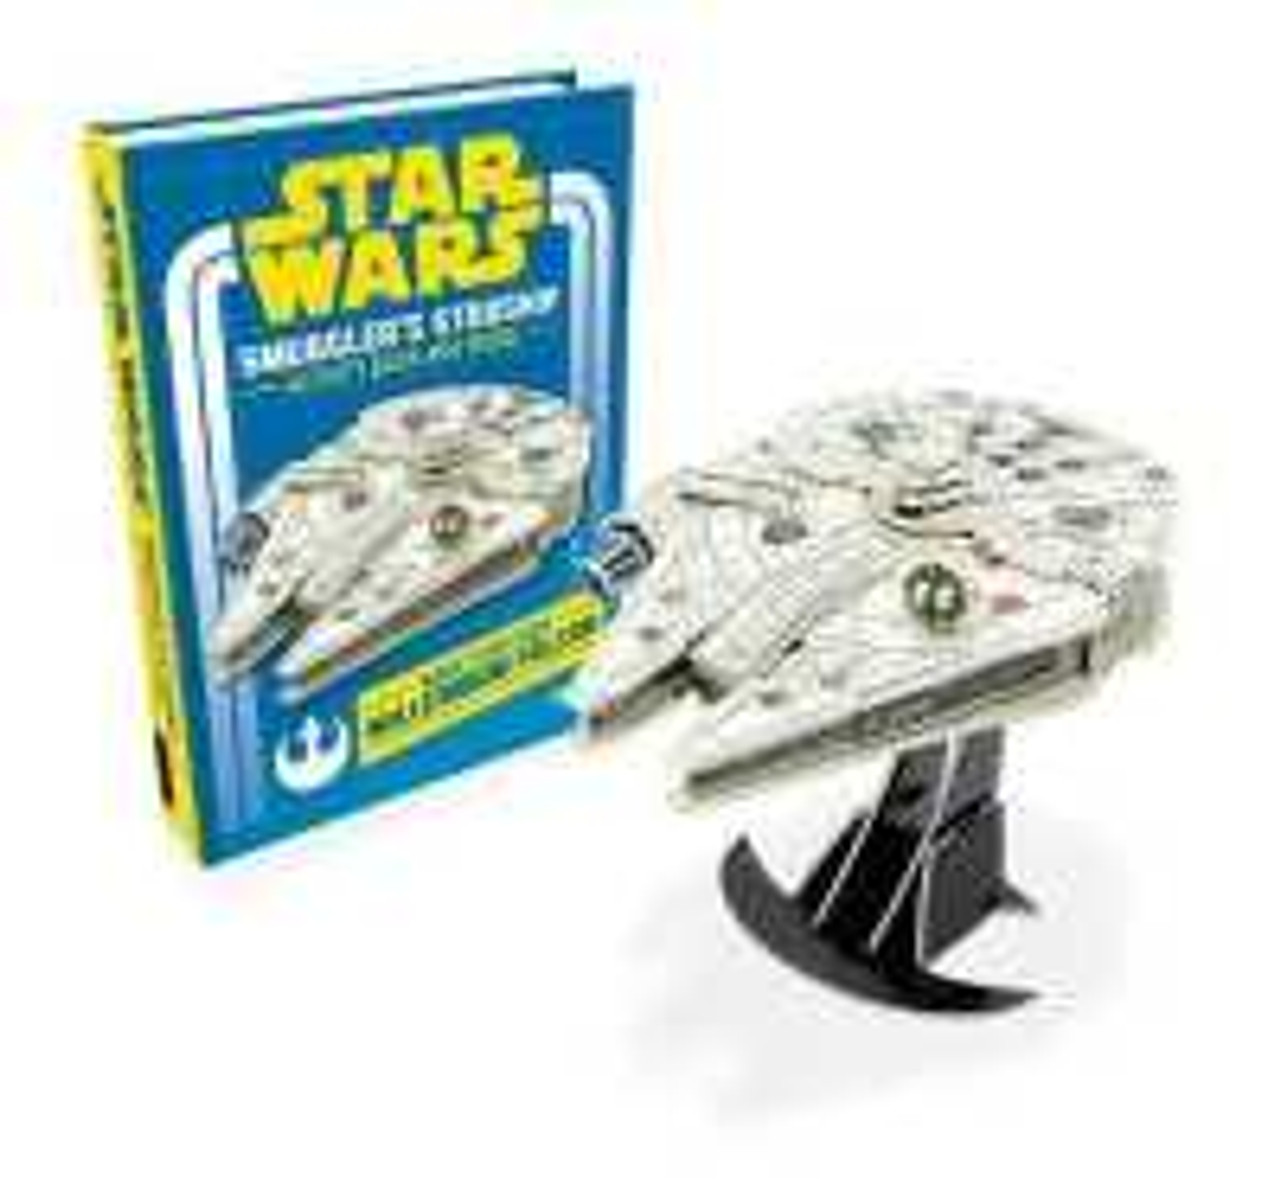 Star Wars Smuggler's starship - activity book and model Lets you join Han and Chewbacca aboard the fastest bucket of bolts in the galaxy. Packed with amazing puzzles and a Millennium Falcon of your own to build, this title offers hours of Star Wars fun such as: mazes, codewords and puzzles.